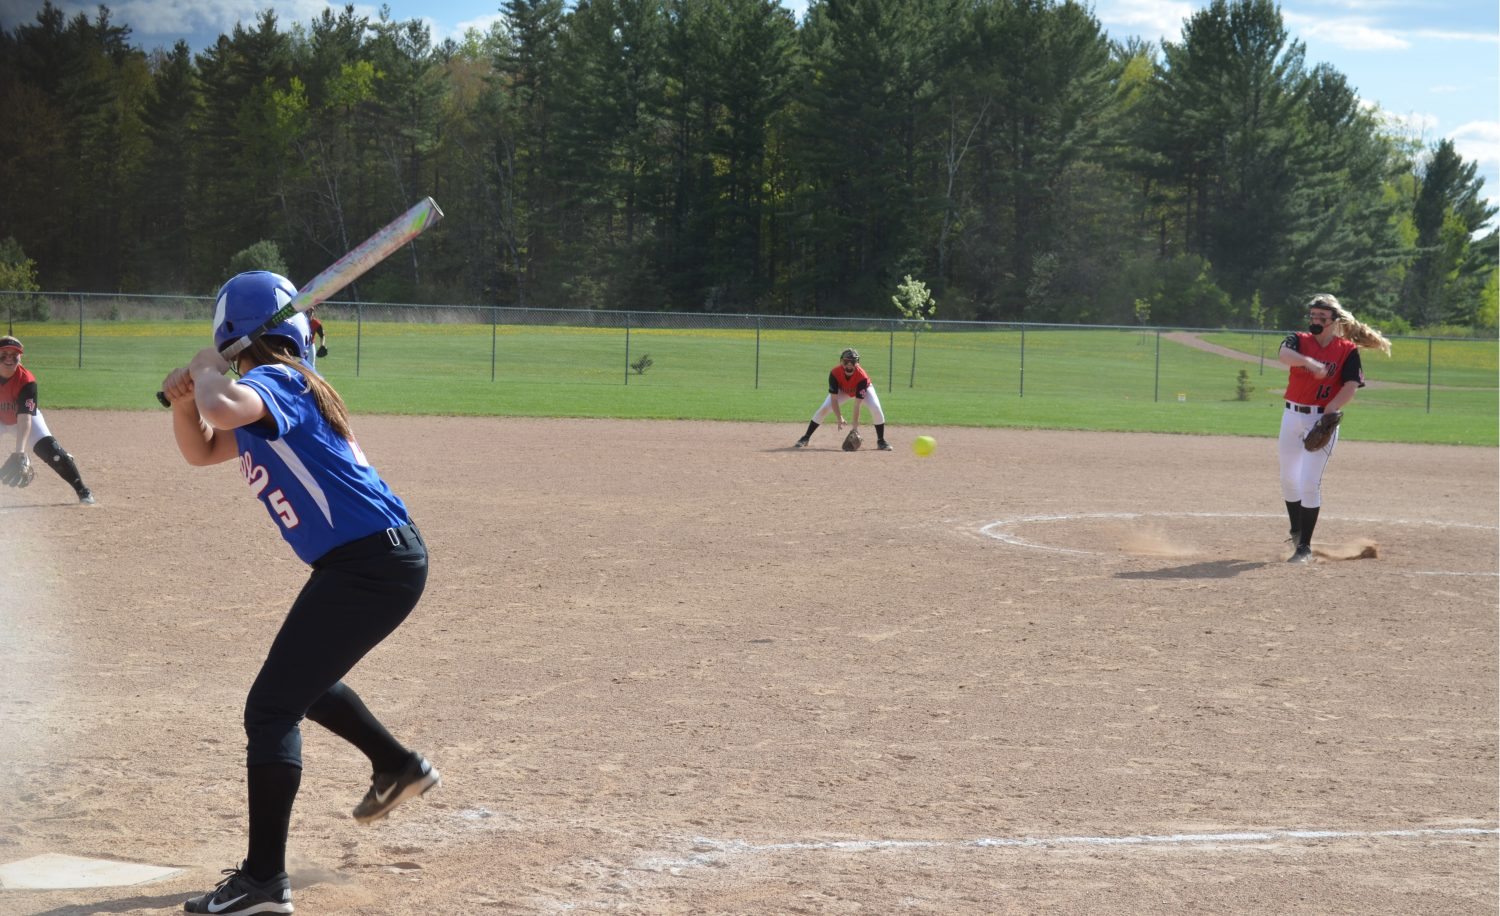 The ball is pitched to Kelsie Belfiori. She would hit a hard grounder straight to the pitcher's knee.